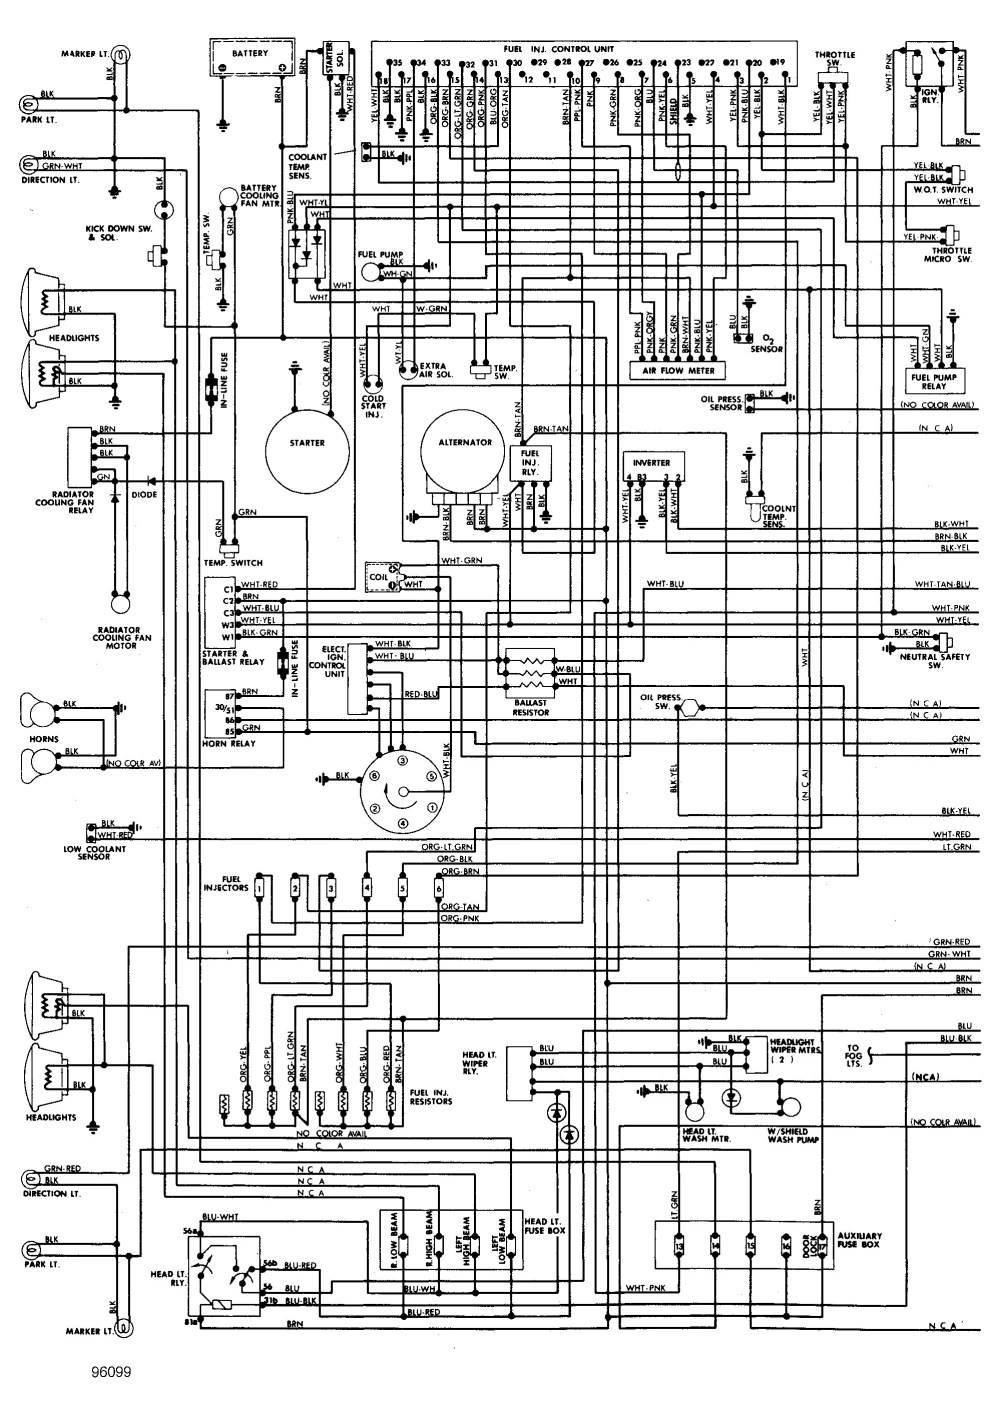 medium resolution of wrg 9159 abs wiring diagram mercury grand marquis 2000 grand marquis radio wiring wiring diagram